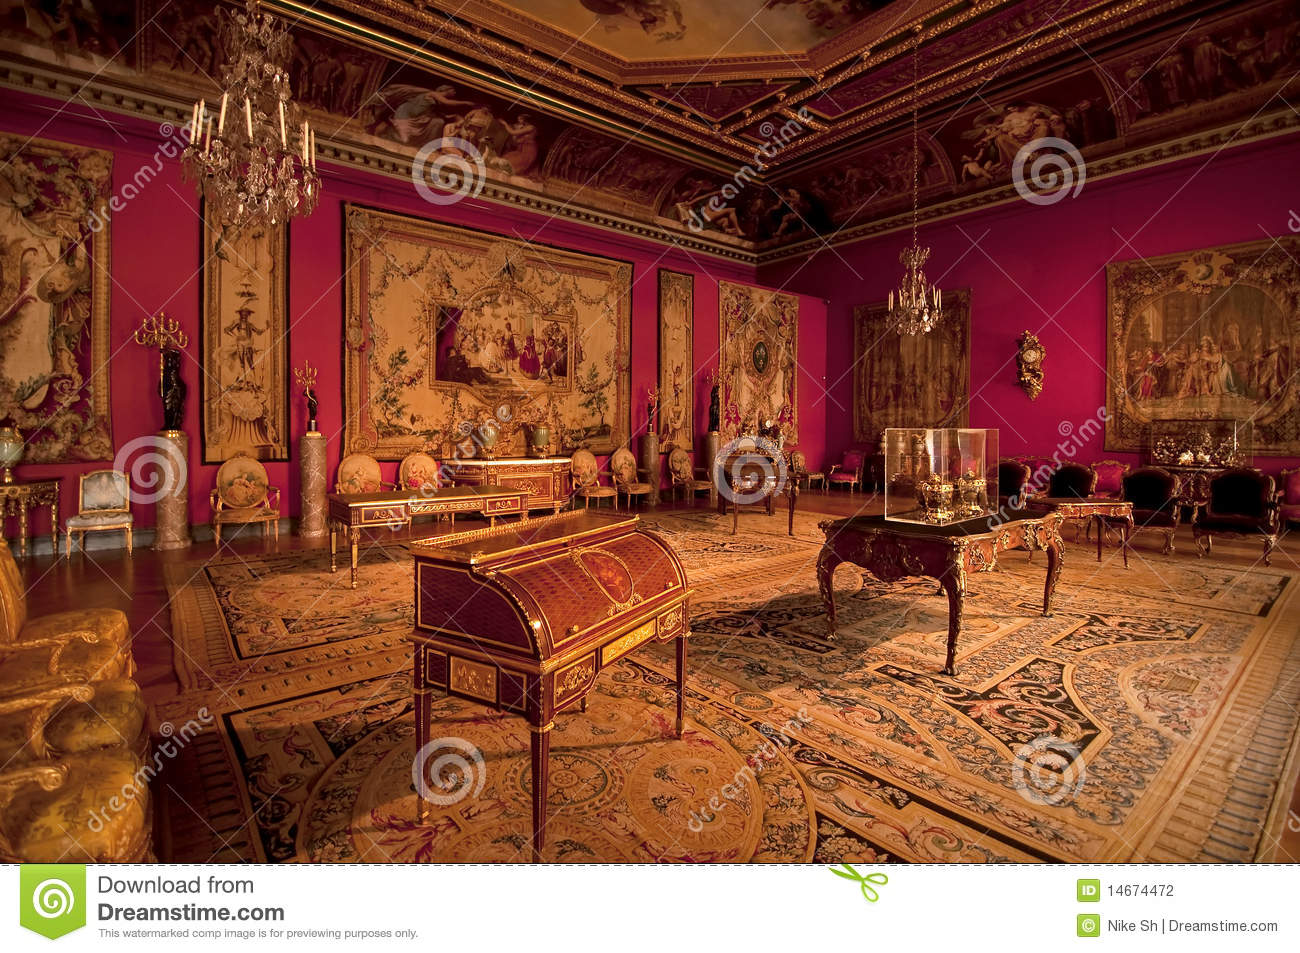 palace room from the Napoleon era at the Louvre Paris.